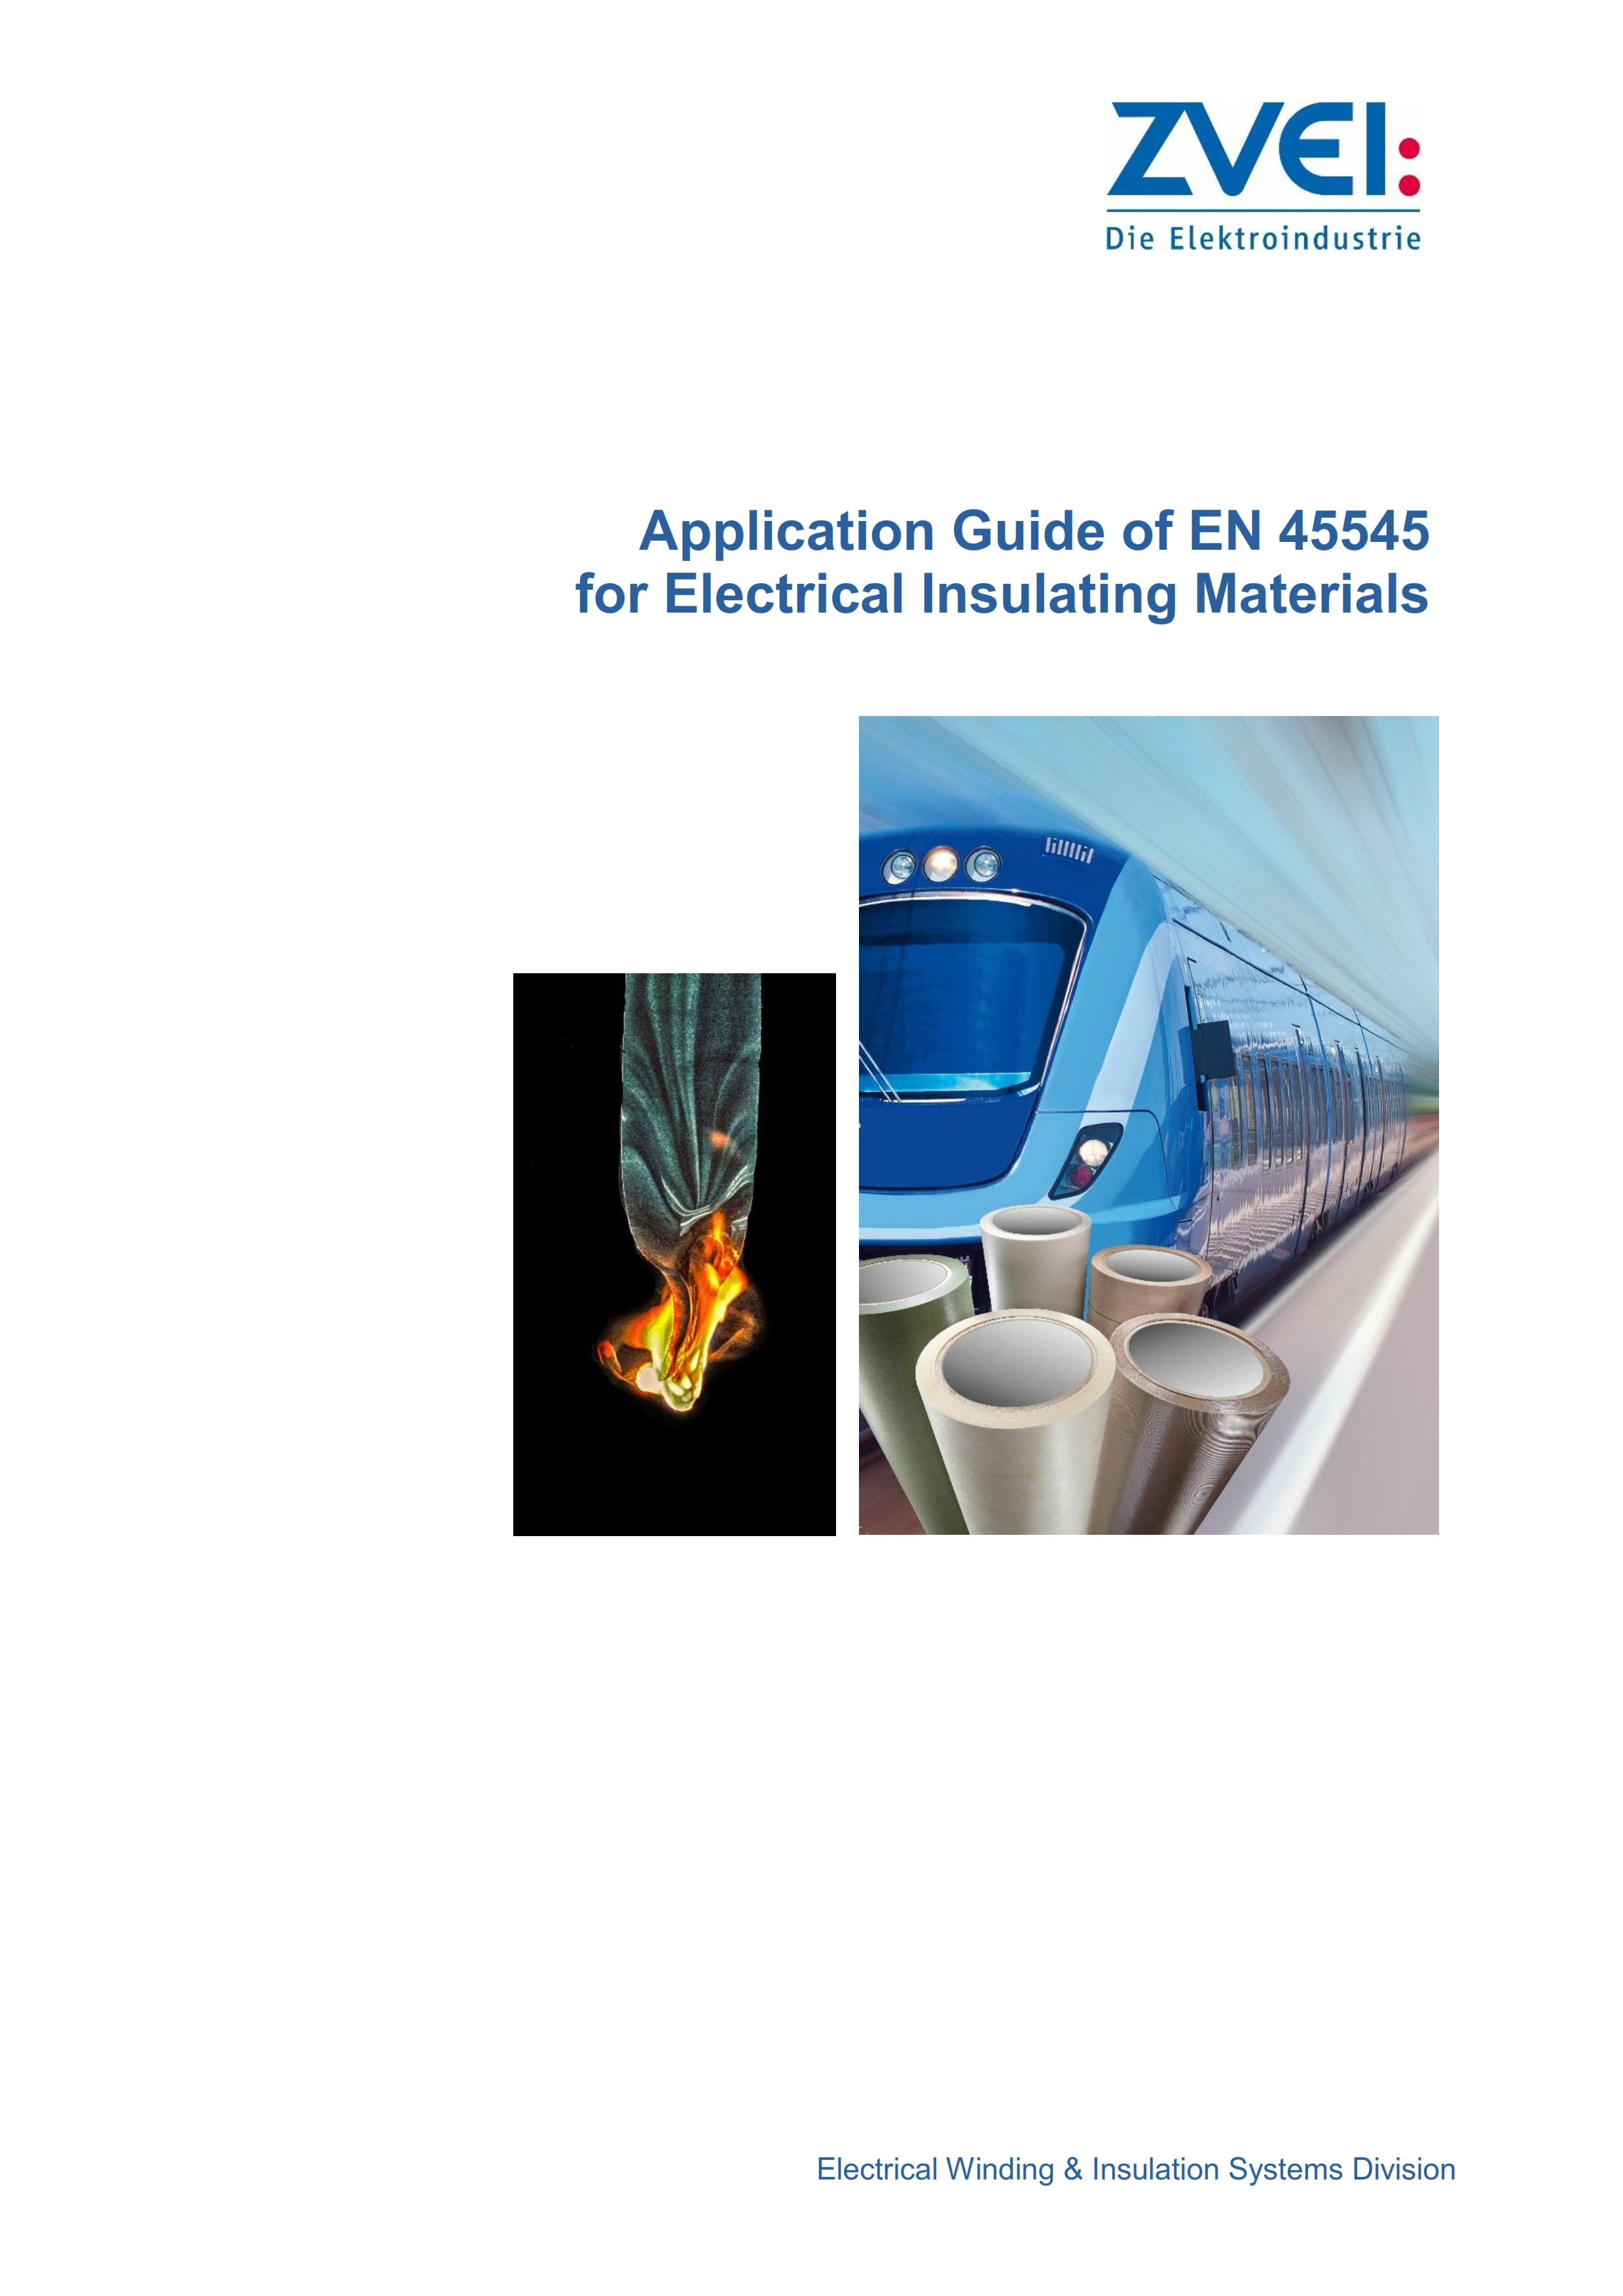 Railway Standard En 45545 Application Manual For Electrical With An Understanding Of This First Requirement Electric The Describes Time European Wide Uniformly Technical Requirements Regarding Fire Protection All Used Materials In Rolling